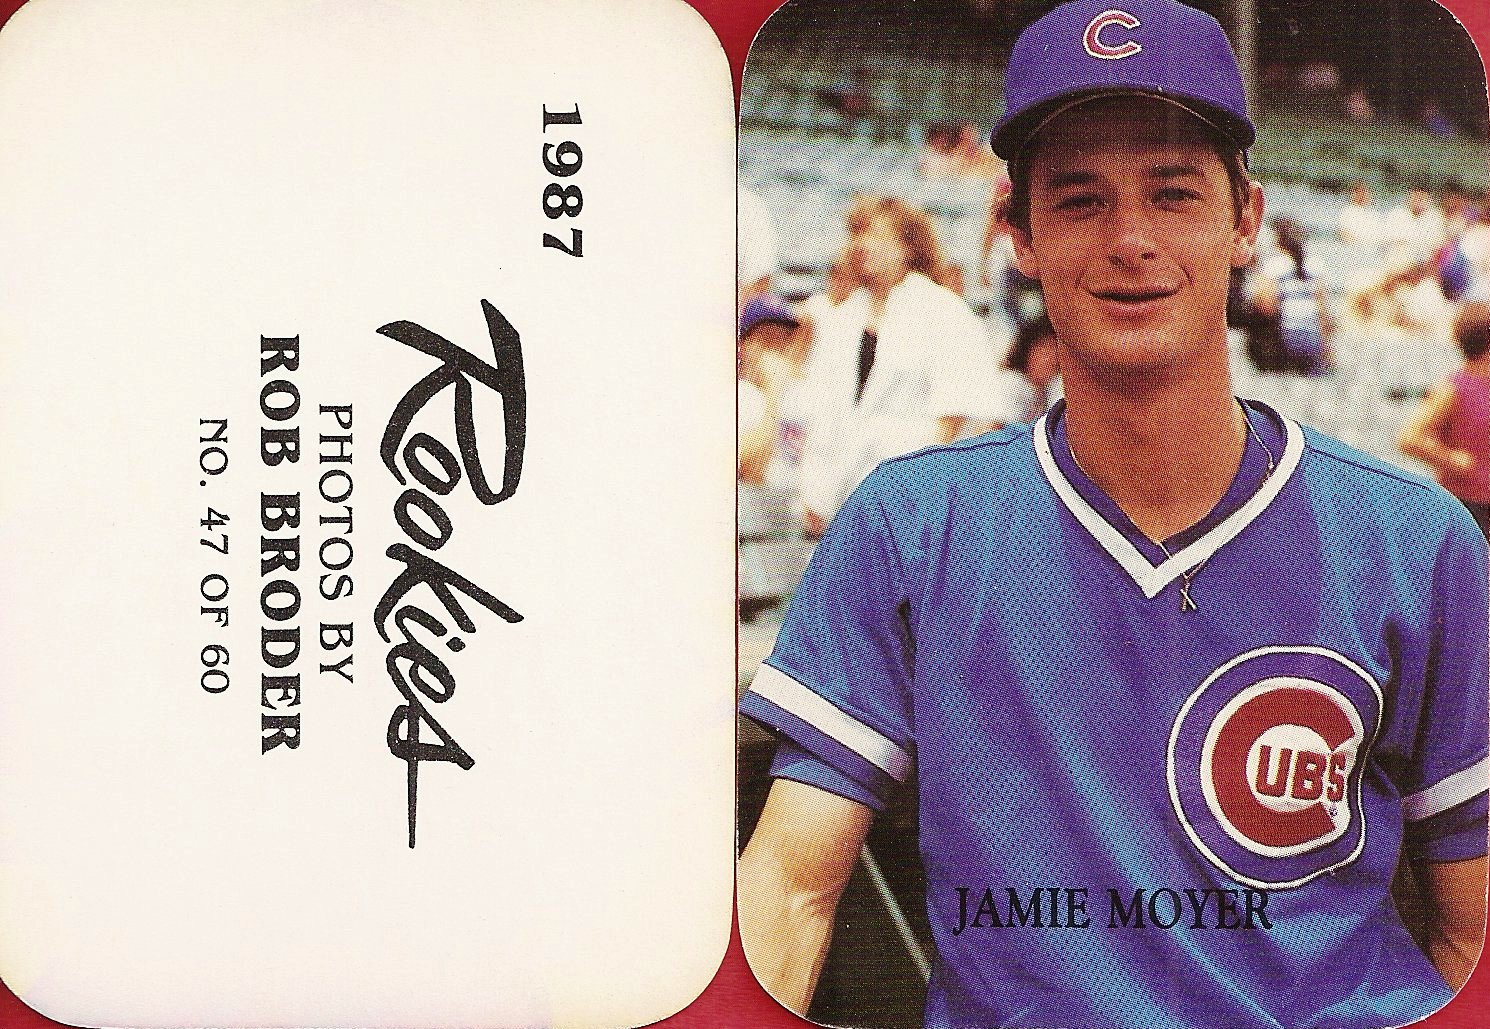 1987 Rob Broder Rookie (Jamie Moyer)